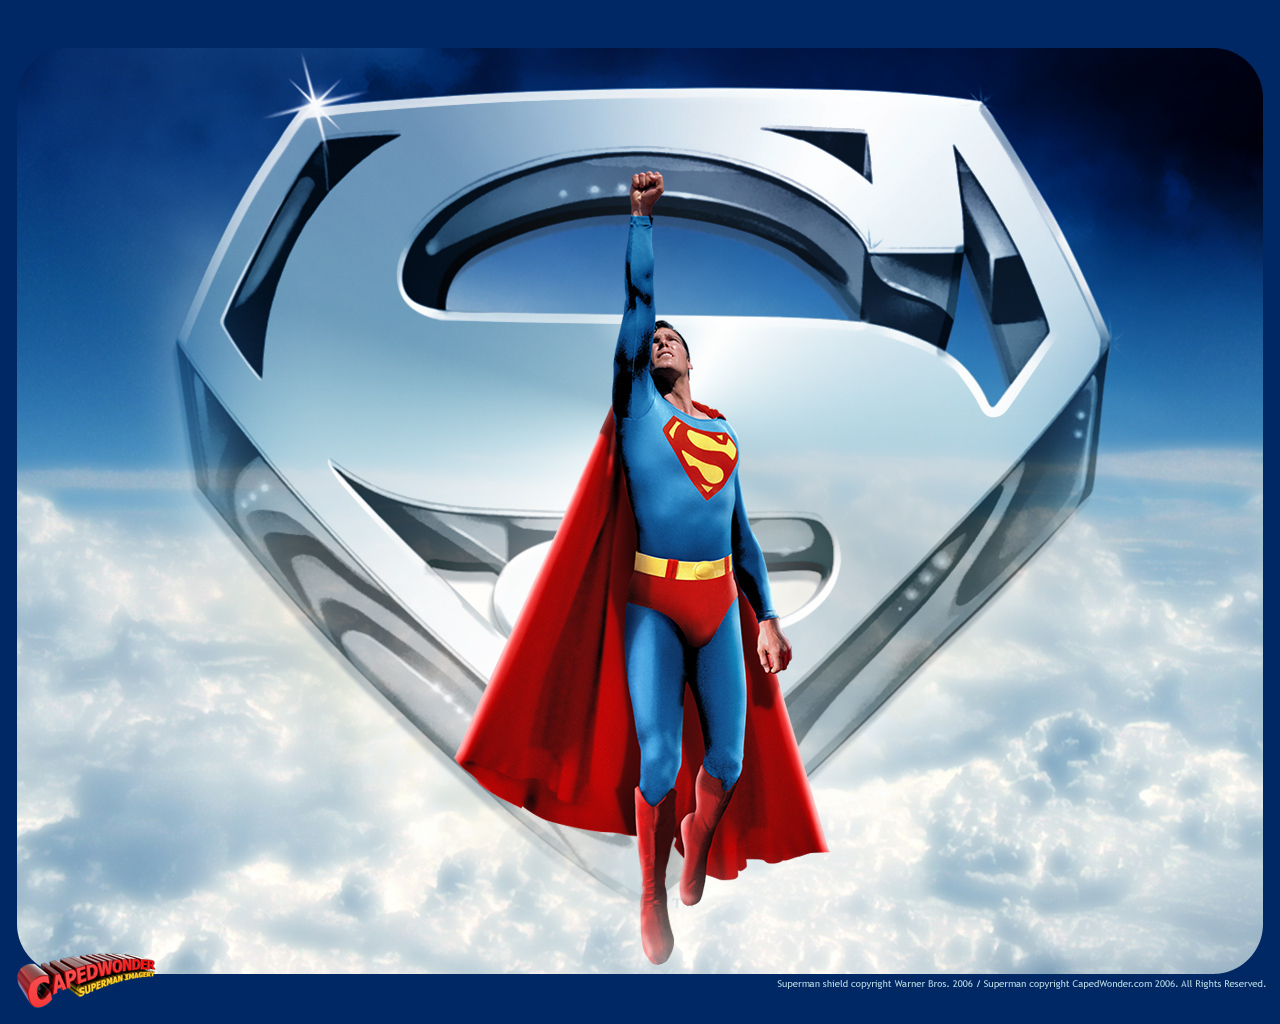 Superman-superman-the-movie-20439202-1280-1024